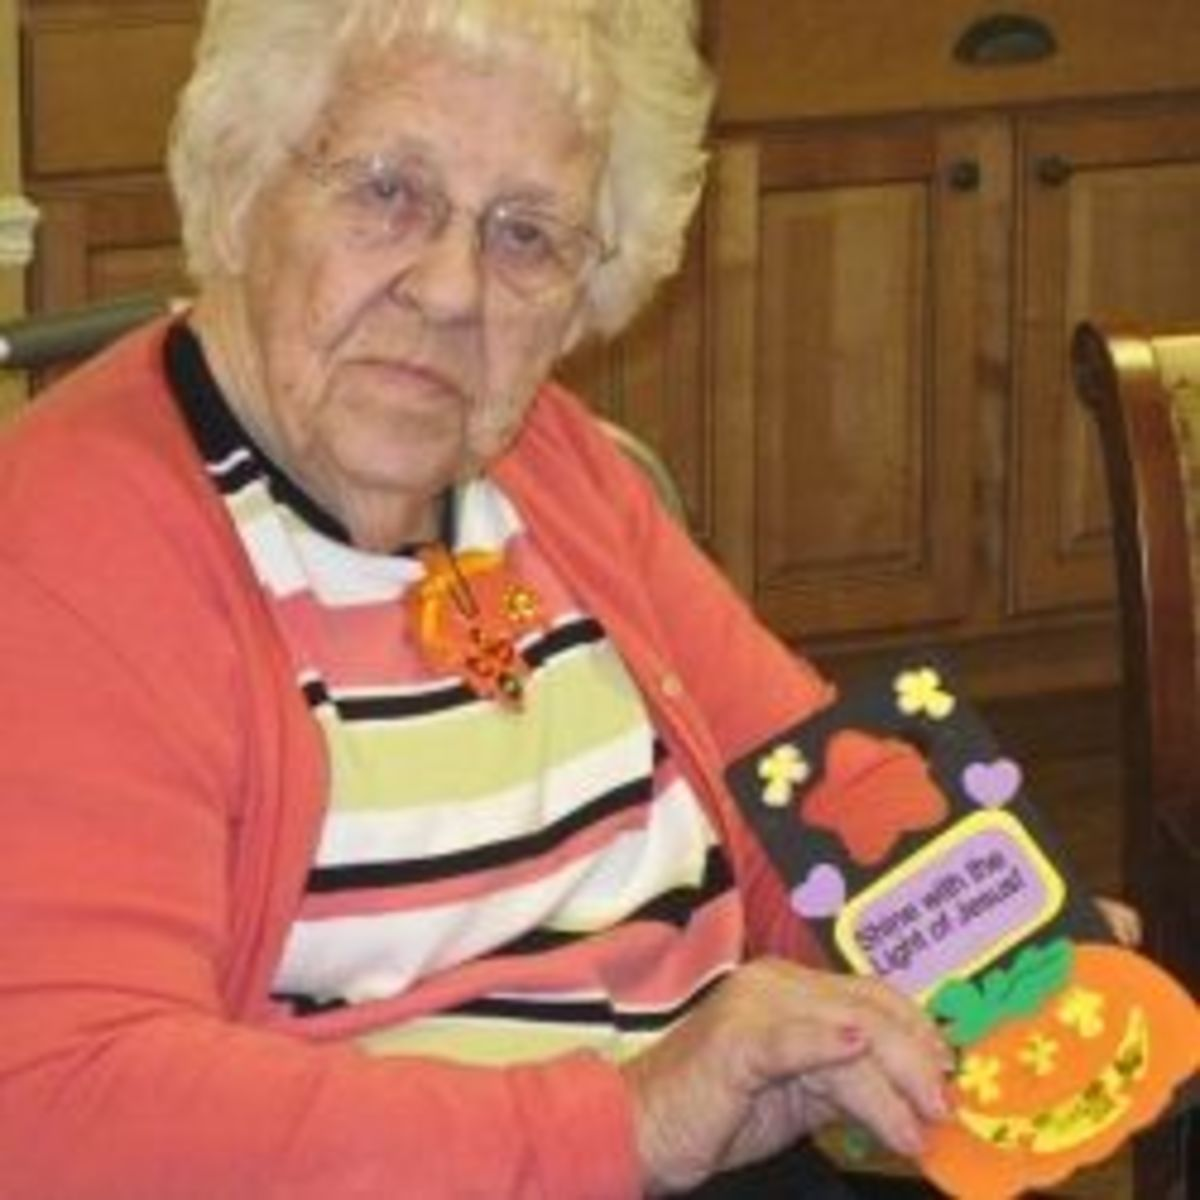 halloween-crafts-for-the-elderly